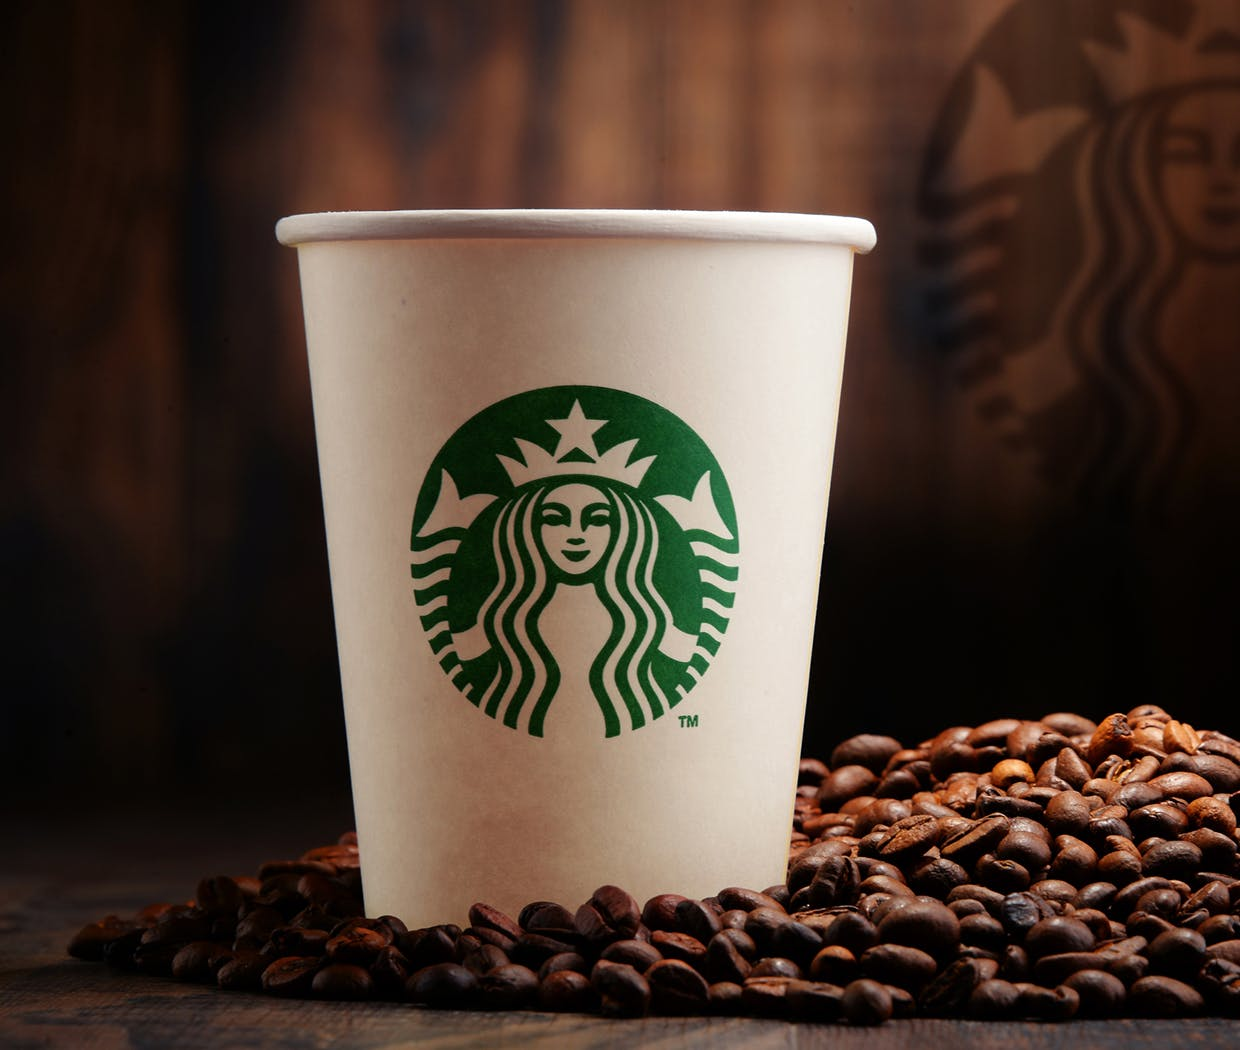 Starbucks wins Channel 4's £1m diversity competition – Marketing Week